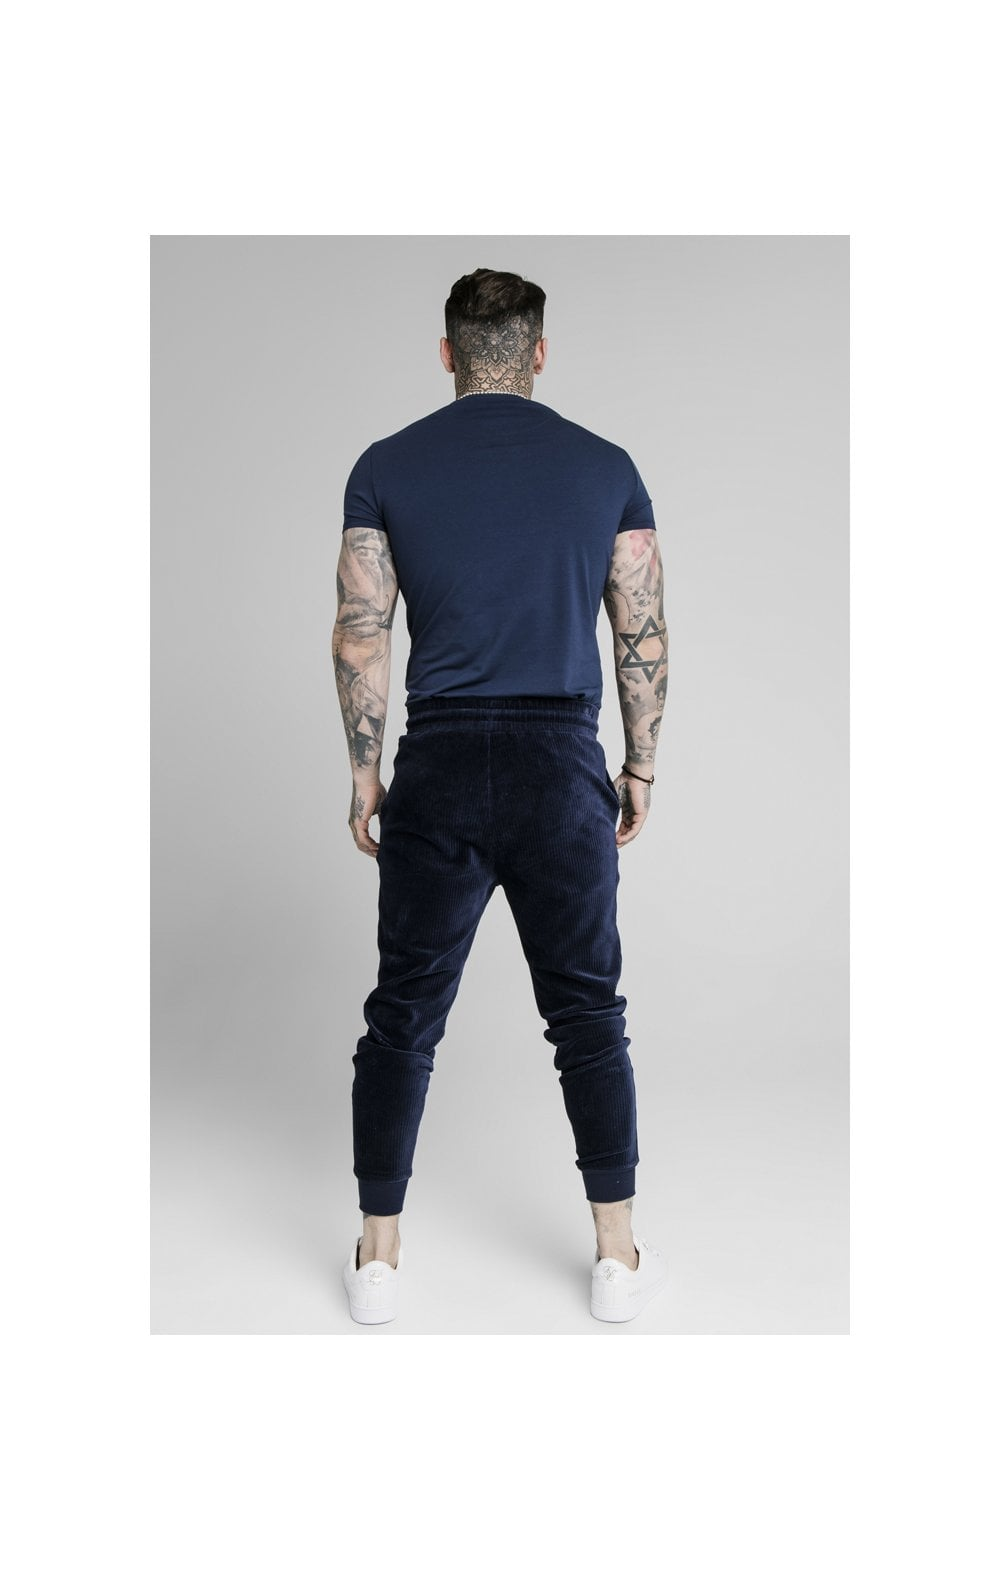 SikSilk Allure Straight Hem Gym Tee - Navy (5)